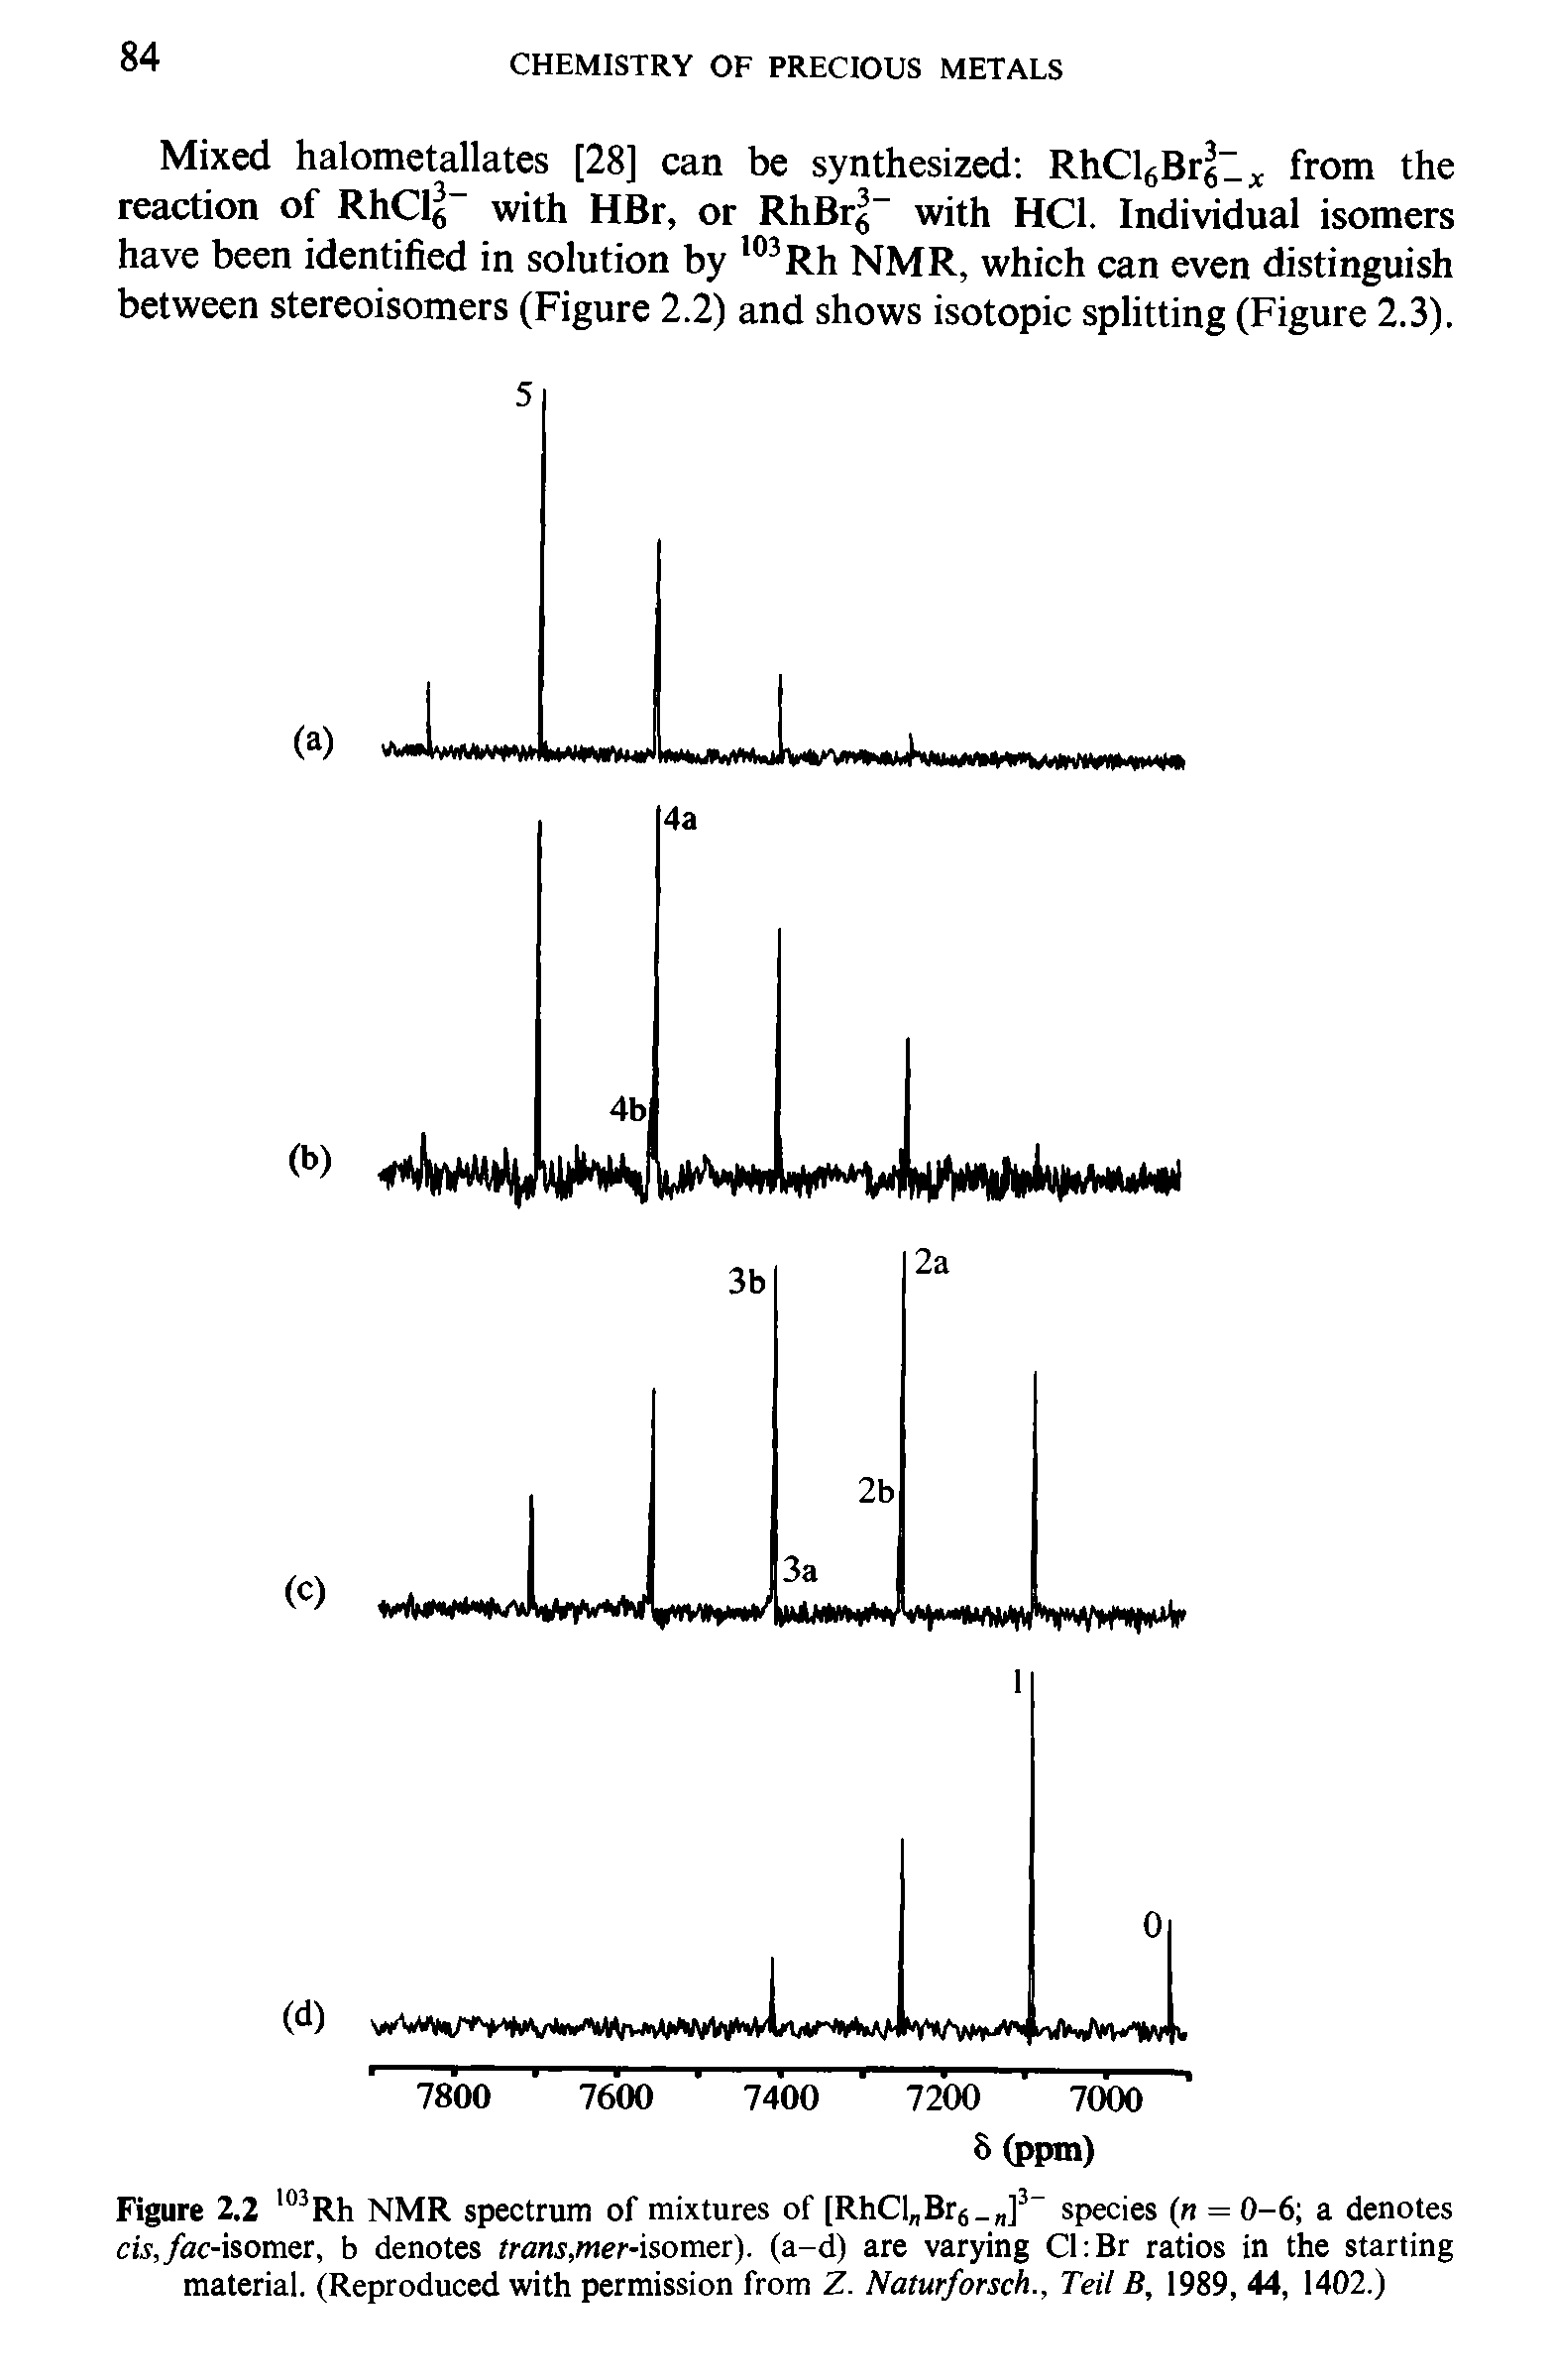 "Figure 2.2 103Rh NMR spectrum of mixtures of [RhCl Br6 ]3 species (n = 0-6 a denotes cis,/ac-isomer, b denotes trans,mer-isomer), (a-d) are varying Cl Br ratios in the <a href=""/info/starting_material"">starting material</a>. (Reproduced with permission from Z. Naturforsch., Teil B, 1989, 44, 1402.)"